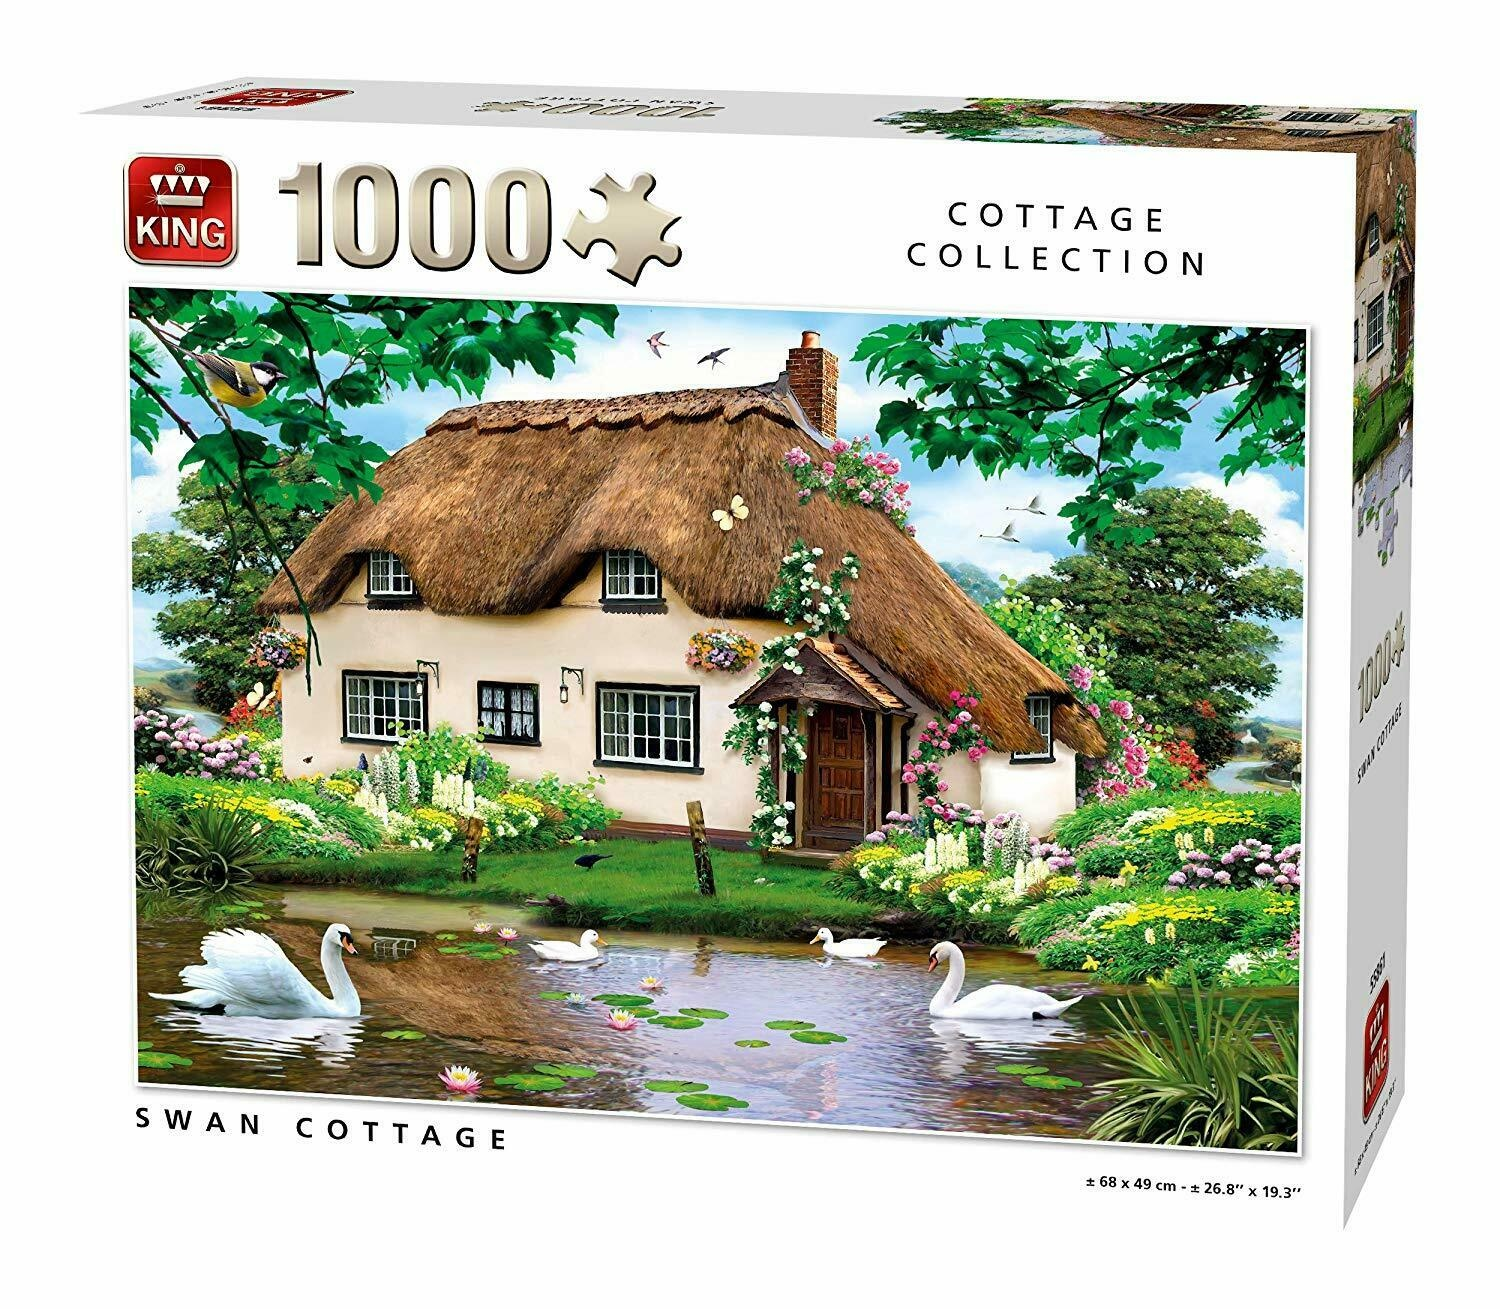 king-international-swan-cottage-1000-teile-puzzle-king-puzzle-55861